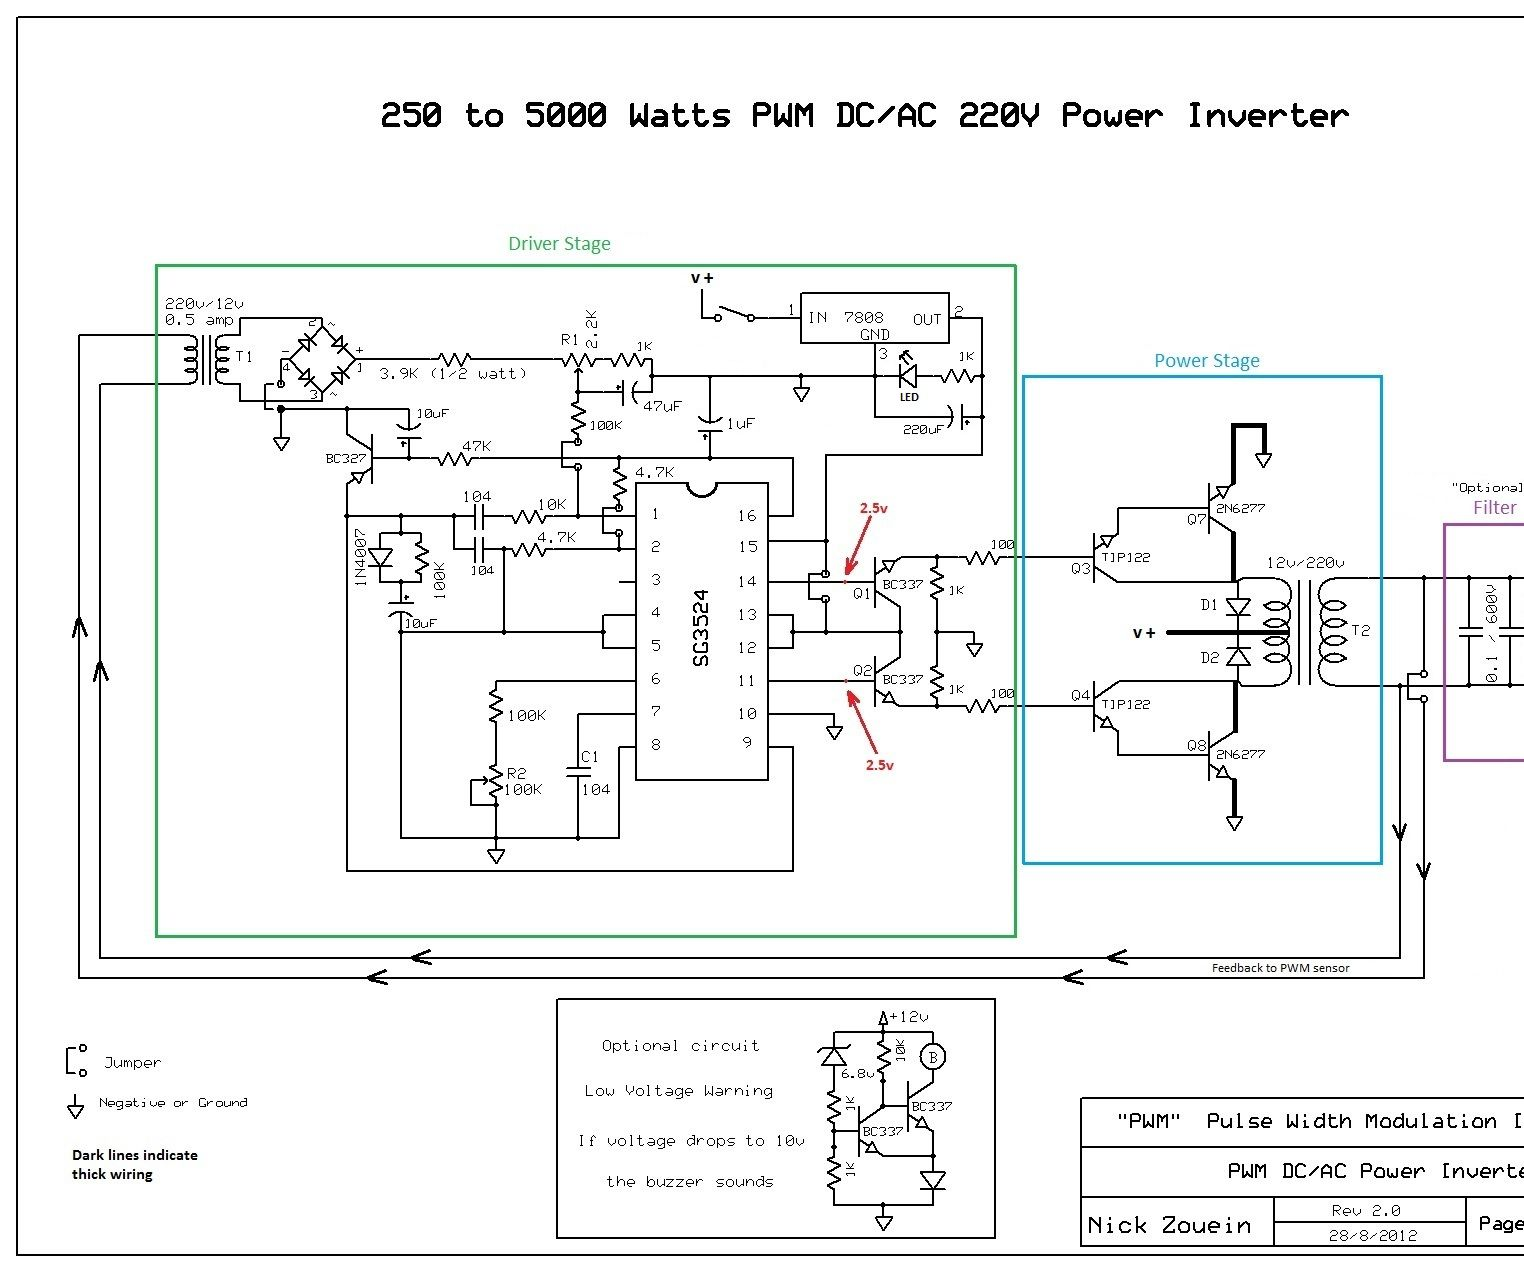 hight resolution of 250 to 5000 watts pwm dc ac 220v power inverter how a pure sine wave inverter works circuit diagrams askcom auto